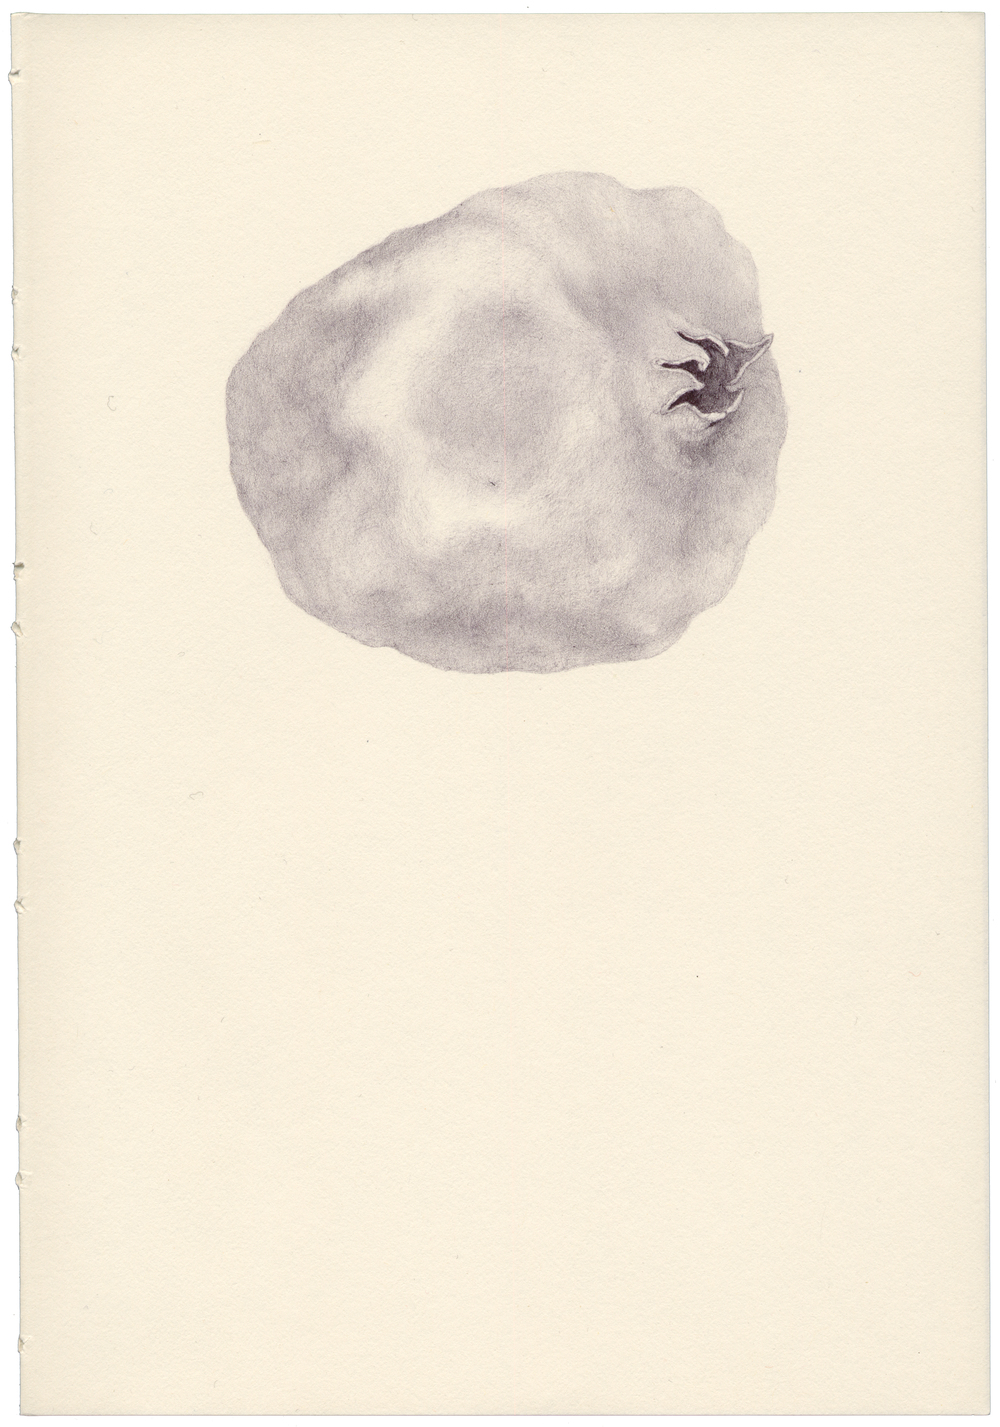 Orata, Untitled [pomegranate]